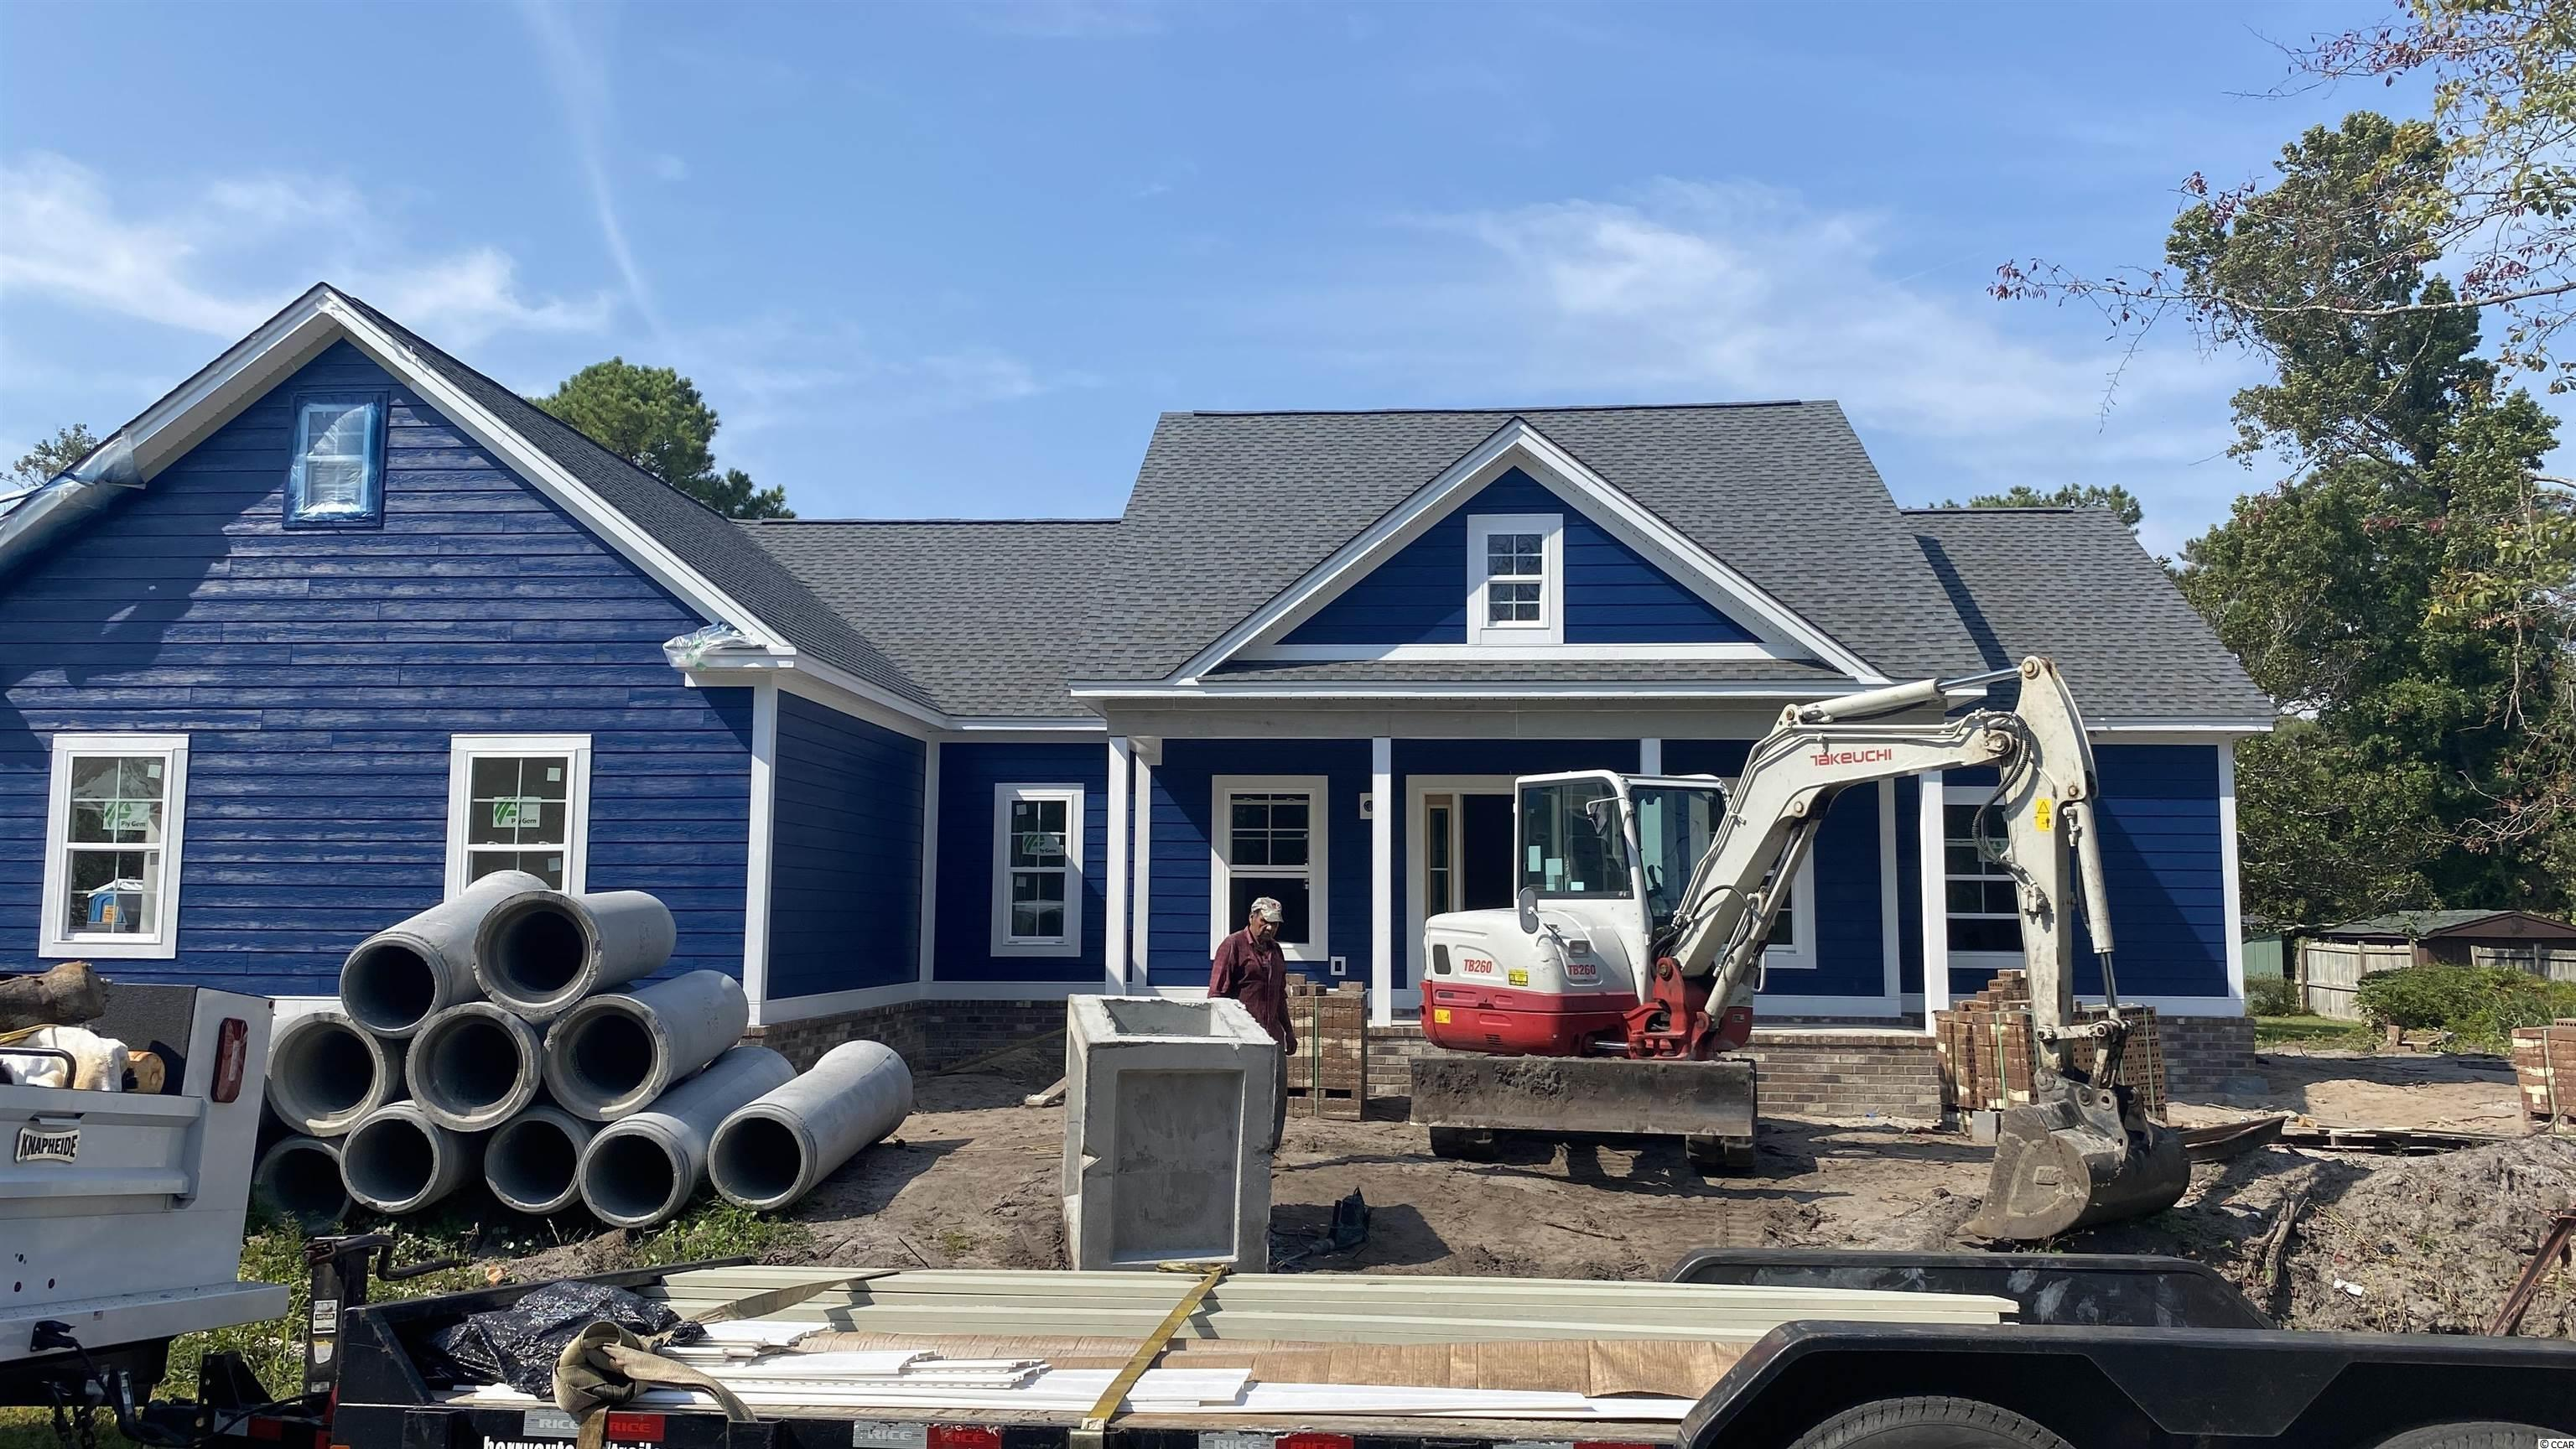 Construction has just begun on this charming, 3 bedroom home located in the heart of North Myrtle Beach in a NON HOA, well established community.    This split bedroom, open floor plan with 9' ceilings throughout.  The en suite features tray ceilings while the bath has double vanity sinks and a custom tiled shower.  The well designed kitchen features granite countertops, stainless steel appliances, and an open concept breakfast bar overlooking the dining area and great room.  The great room has a gas fireplace and dramatic tray ceiling. Most evenings will be spent on the  240 sq ft rear porch, overlooking the landscaped lawn complete with in-ground irrigation system.  Check this one out today!